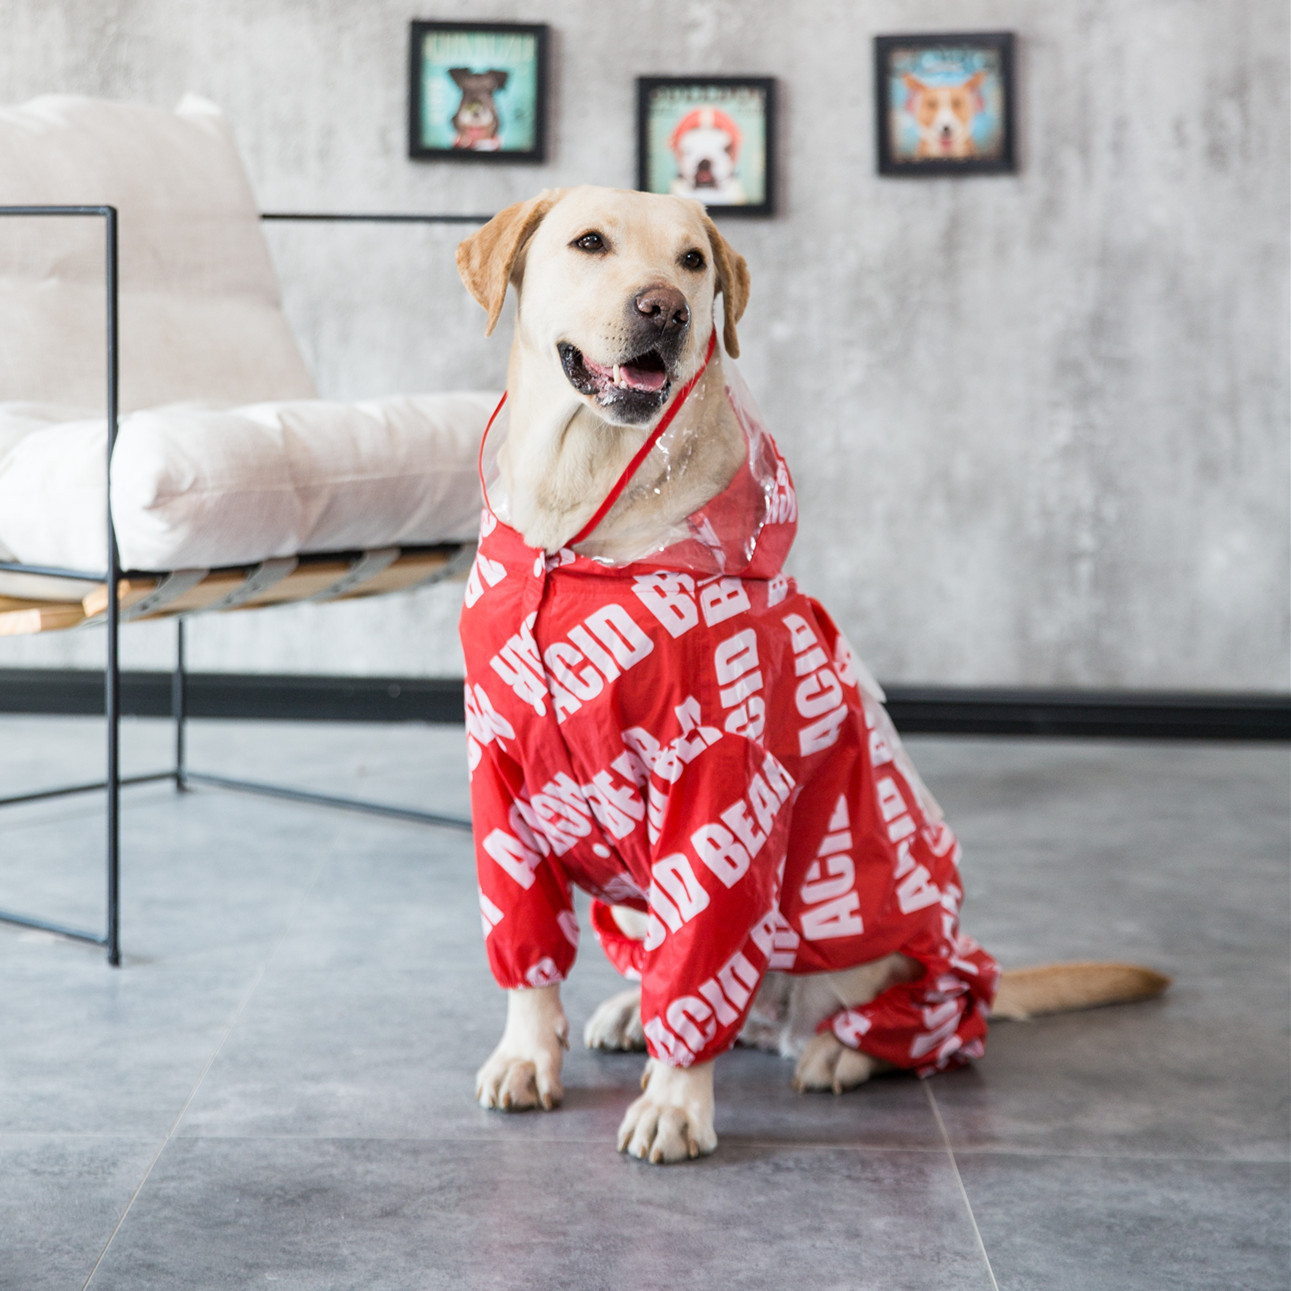 Dog Raincoat Waterproof Letter Fashion Stylish Polyester Best Dog Raincoat For Large Dogs image